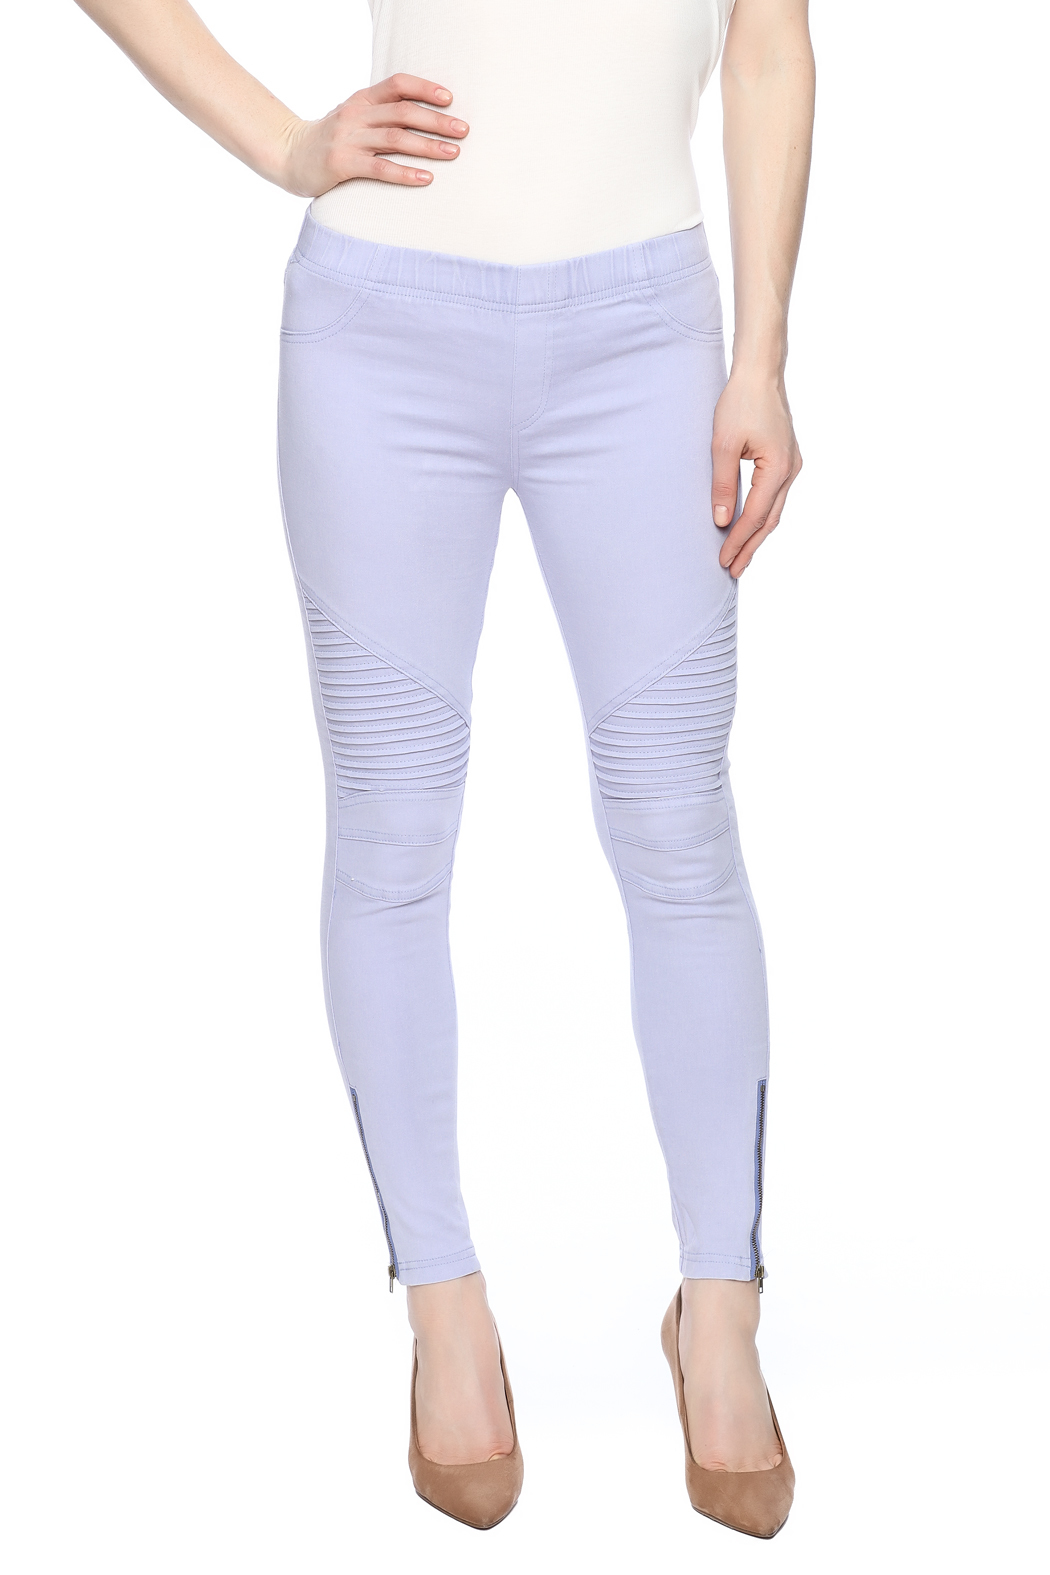 beulah Ribbed Leggings - Front Cropped Image